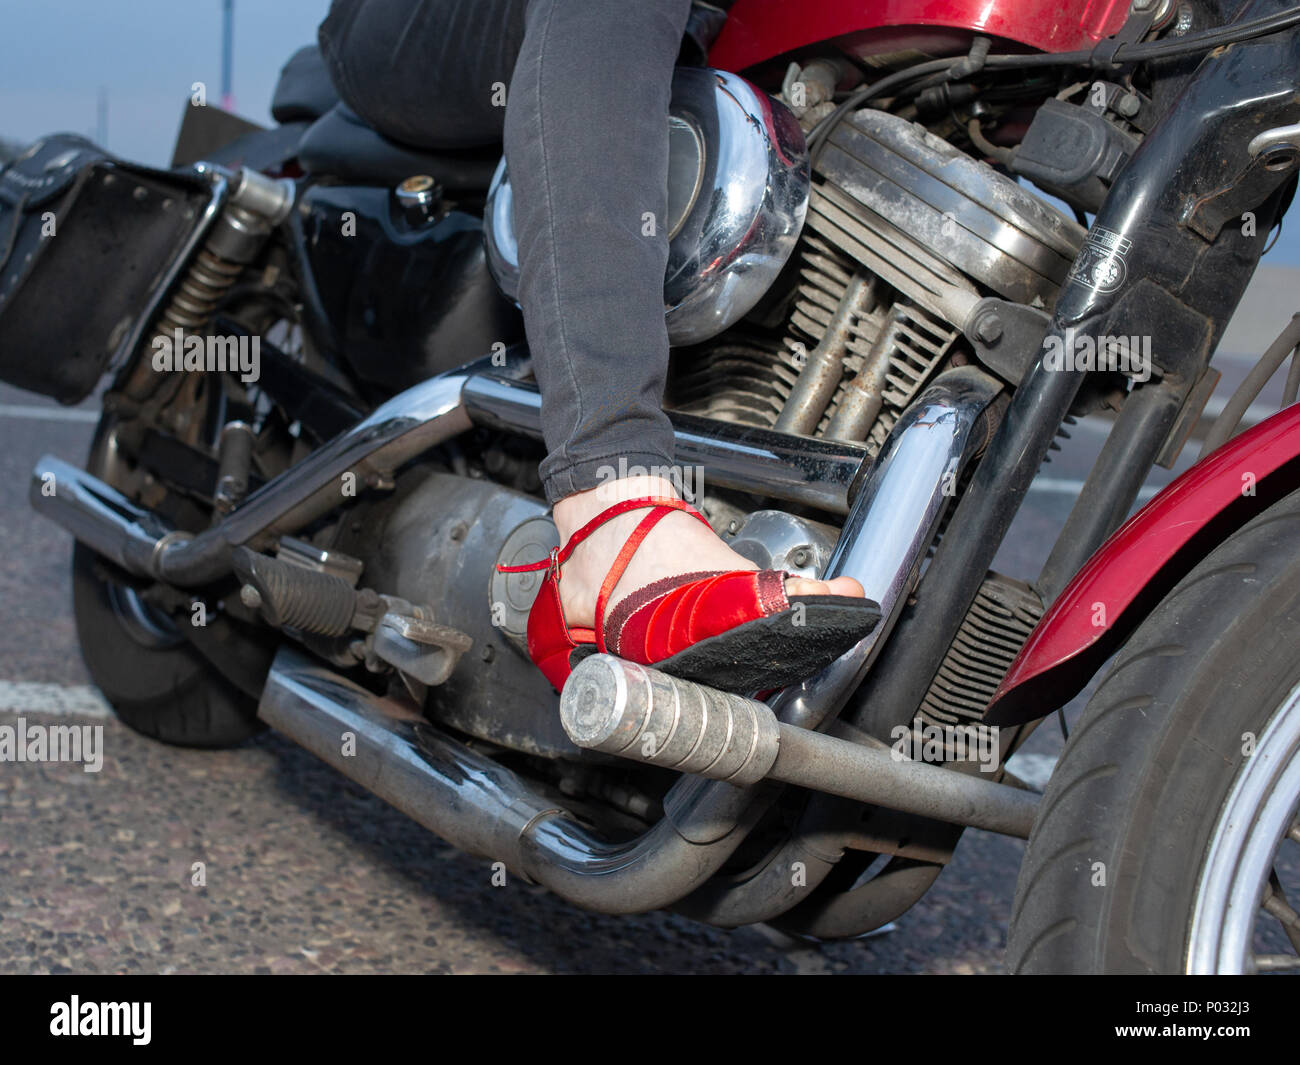 Woman's foot in red high heeled shoes sitting on a motorbike. - Stock Image